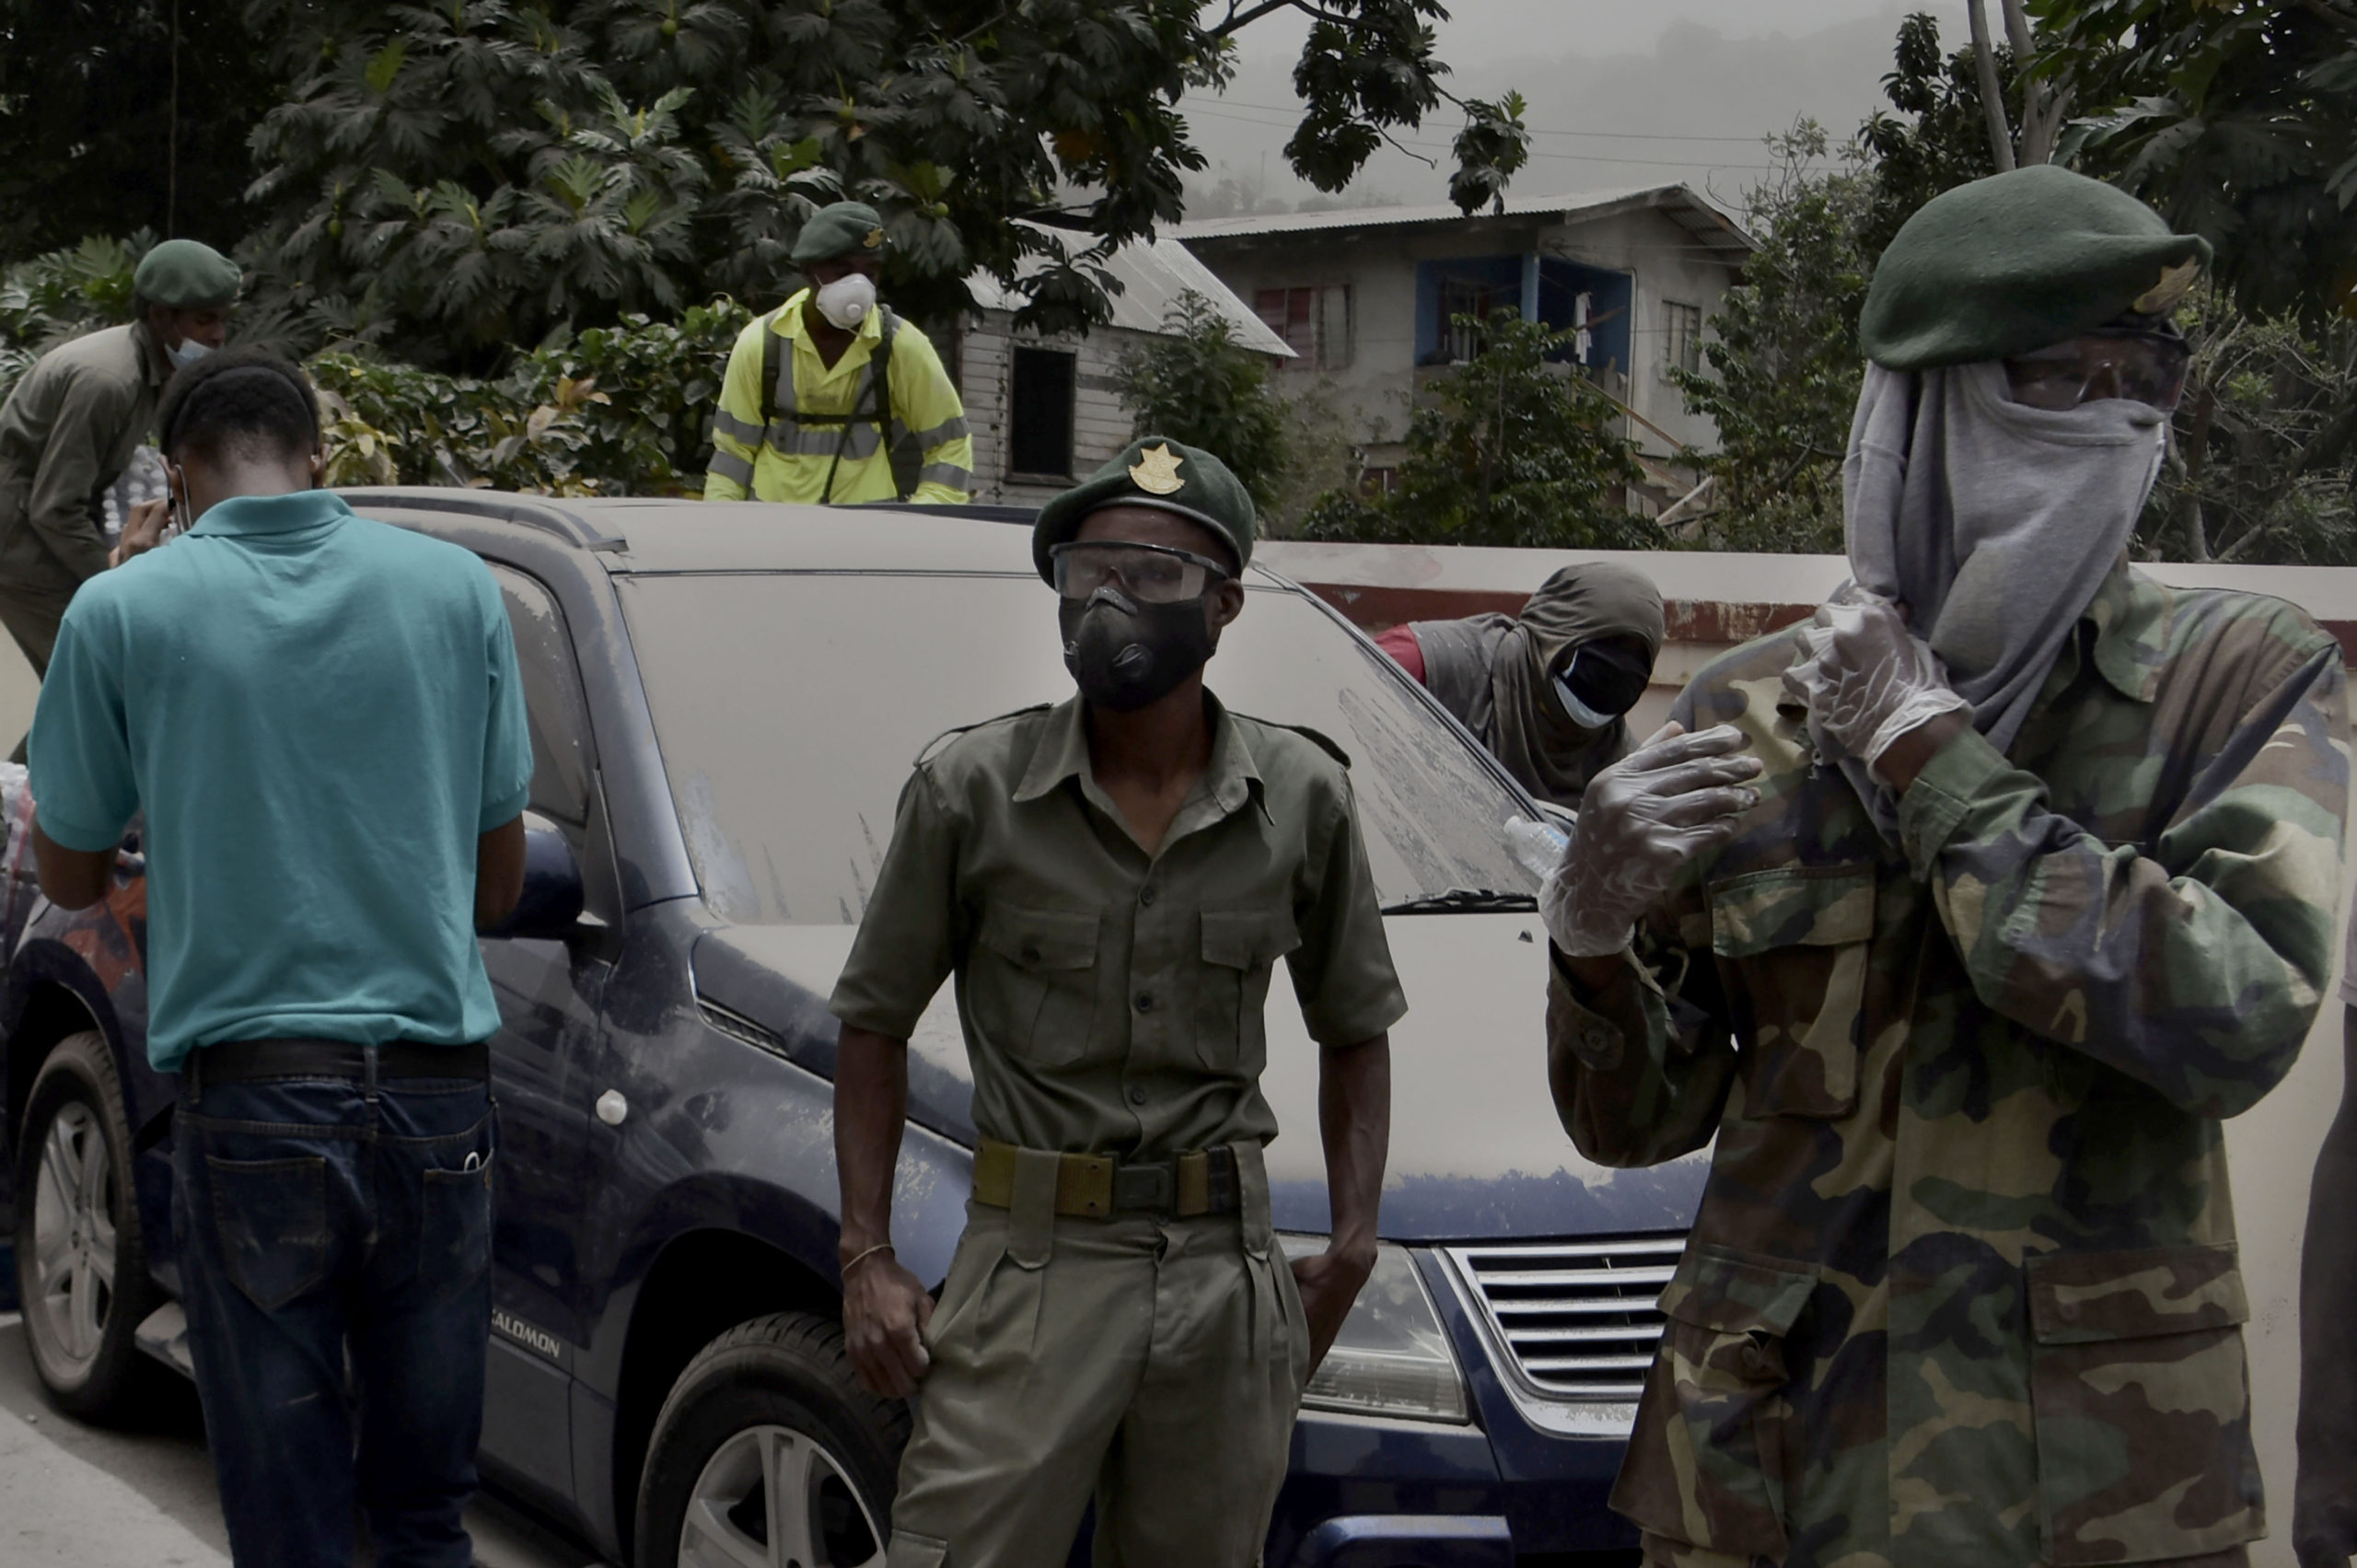 Plan, Prepare, Perform — United States Supports St. Vincent Volcano Response